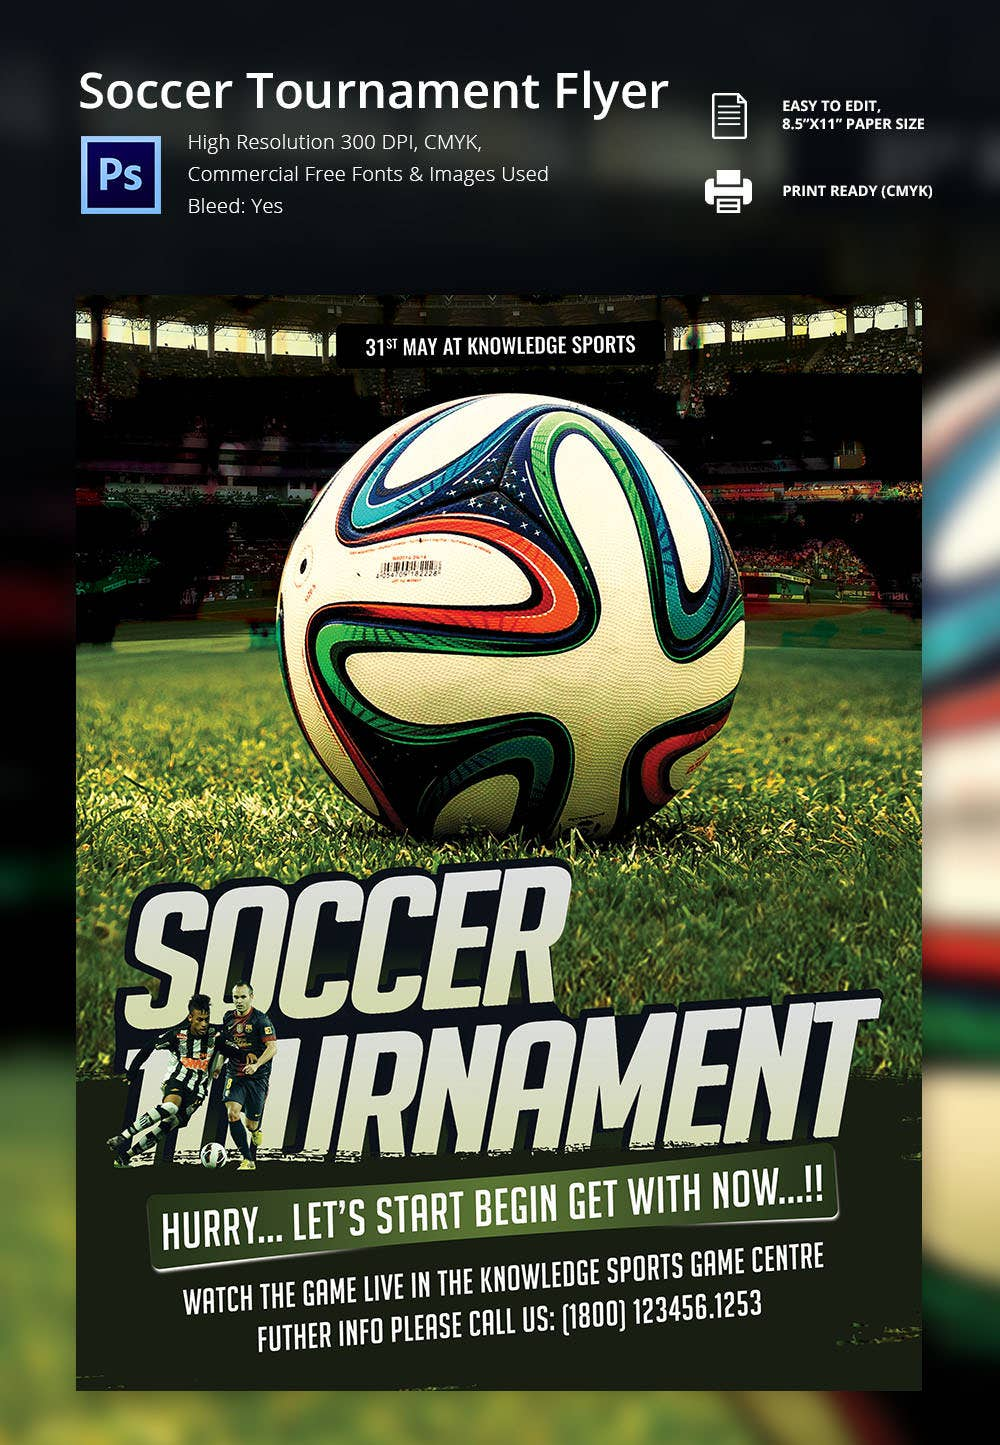 psd flyer templates psd eps ai indesign format soccer tour nt flyer template